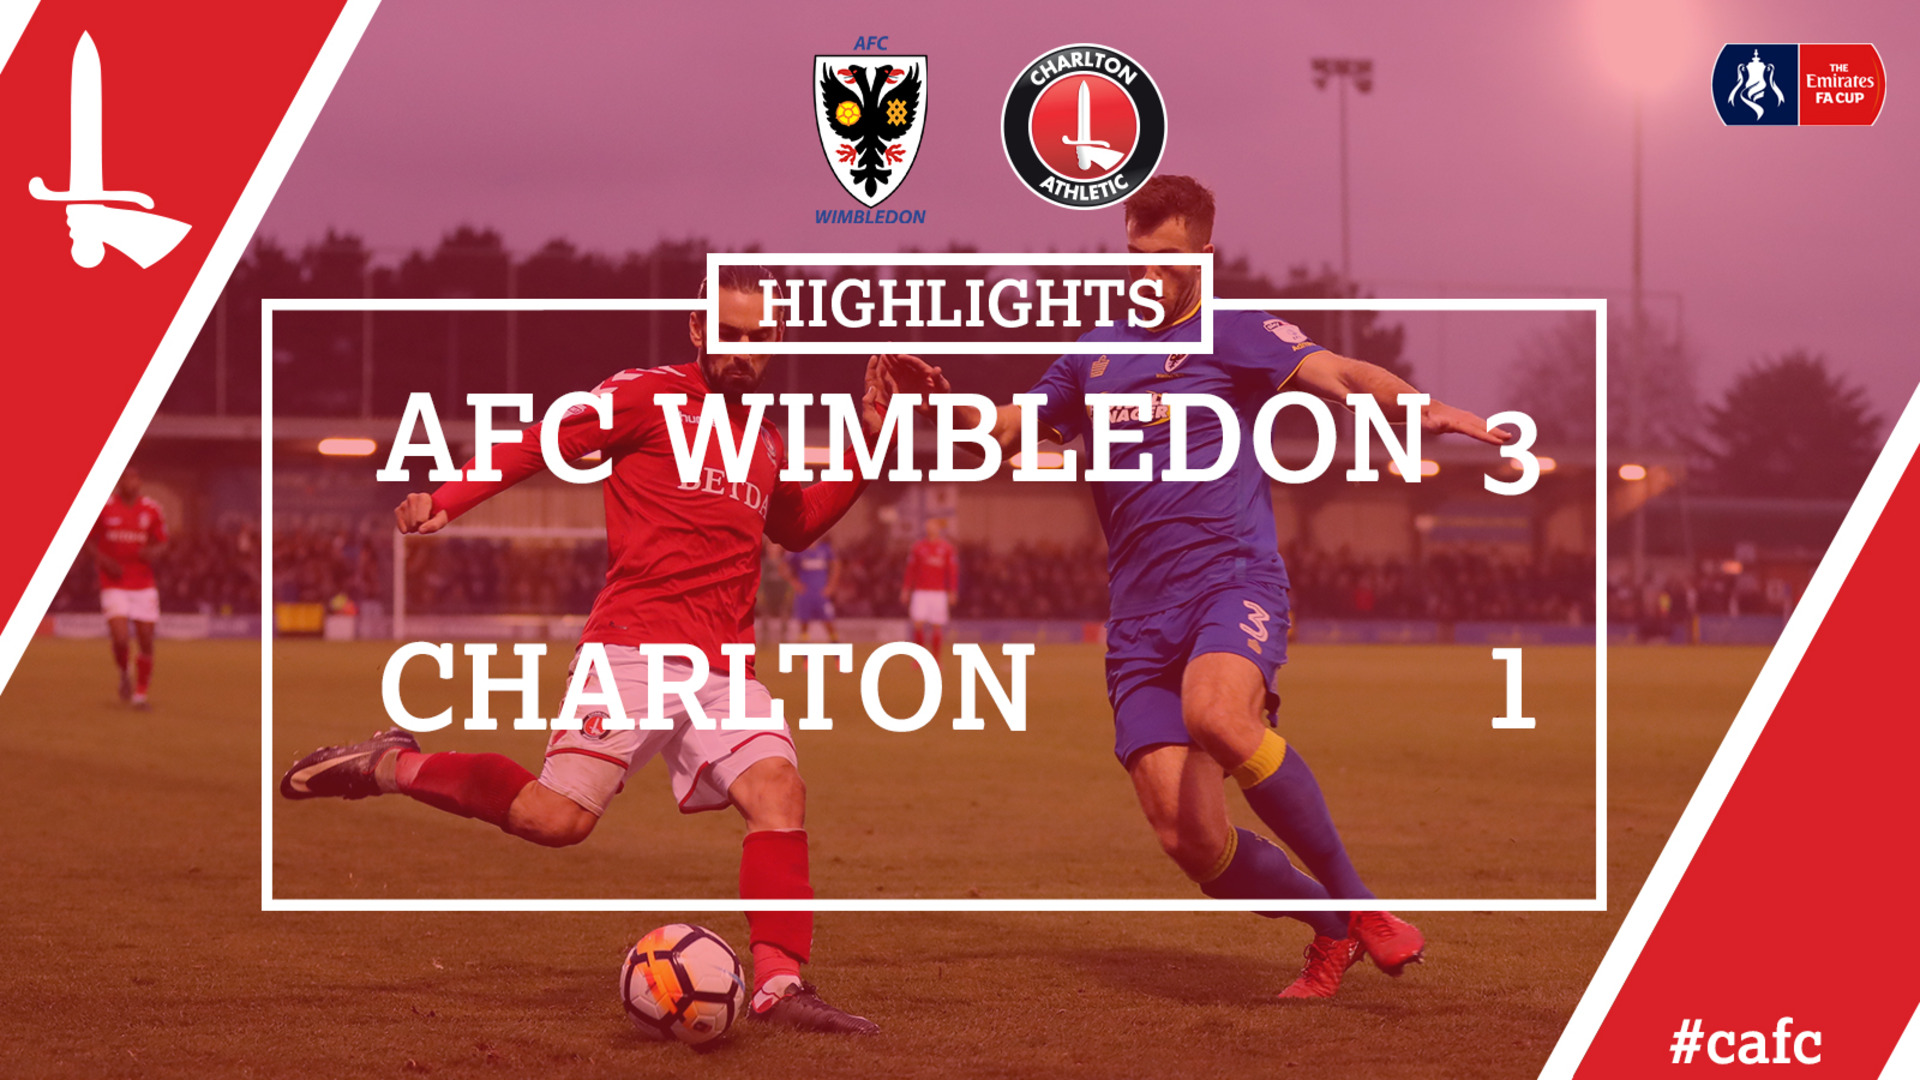 26 HIGHLIGHTS | AFC Wimbledon 3 Charlton 1 (FA Cup Dec 2017)